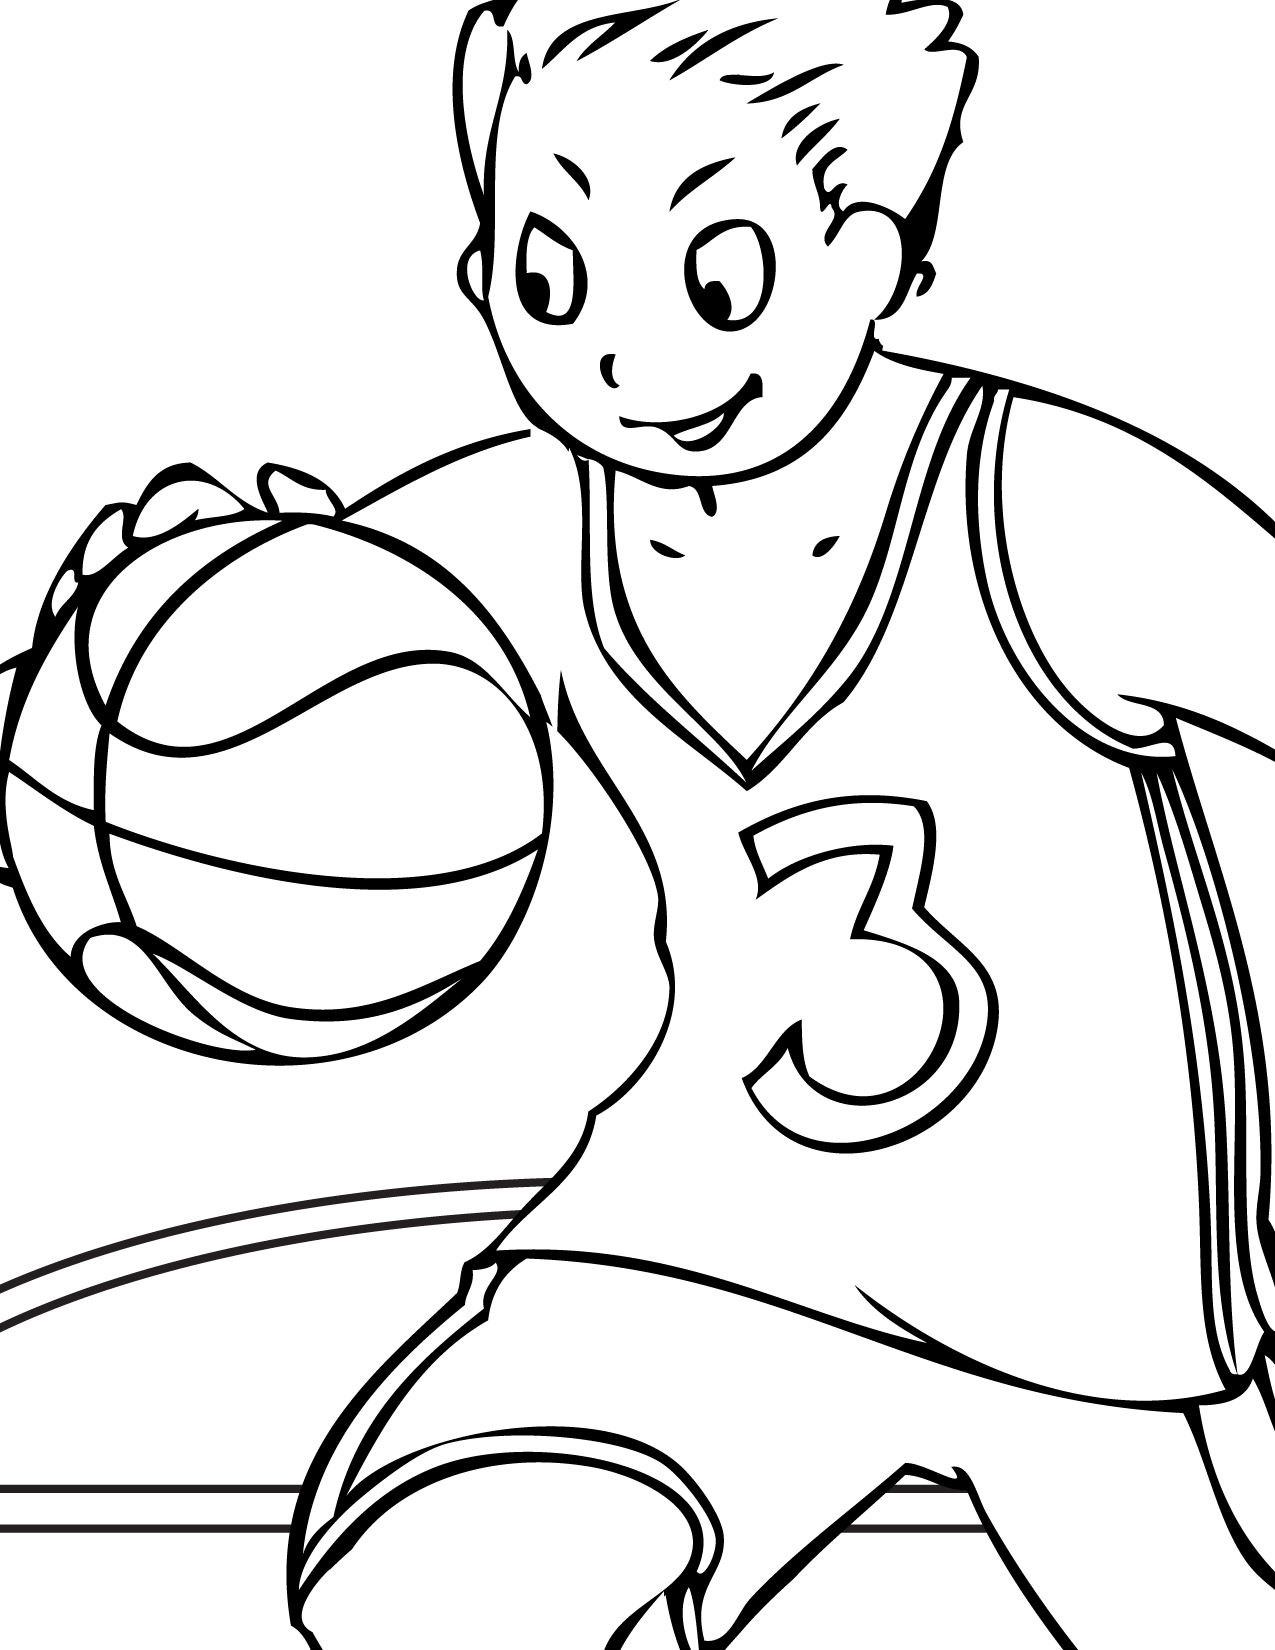 Coloring Pages For Kids Printable : Free printable volleyball coloring pages for kids